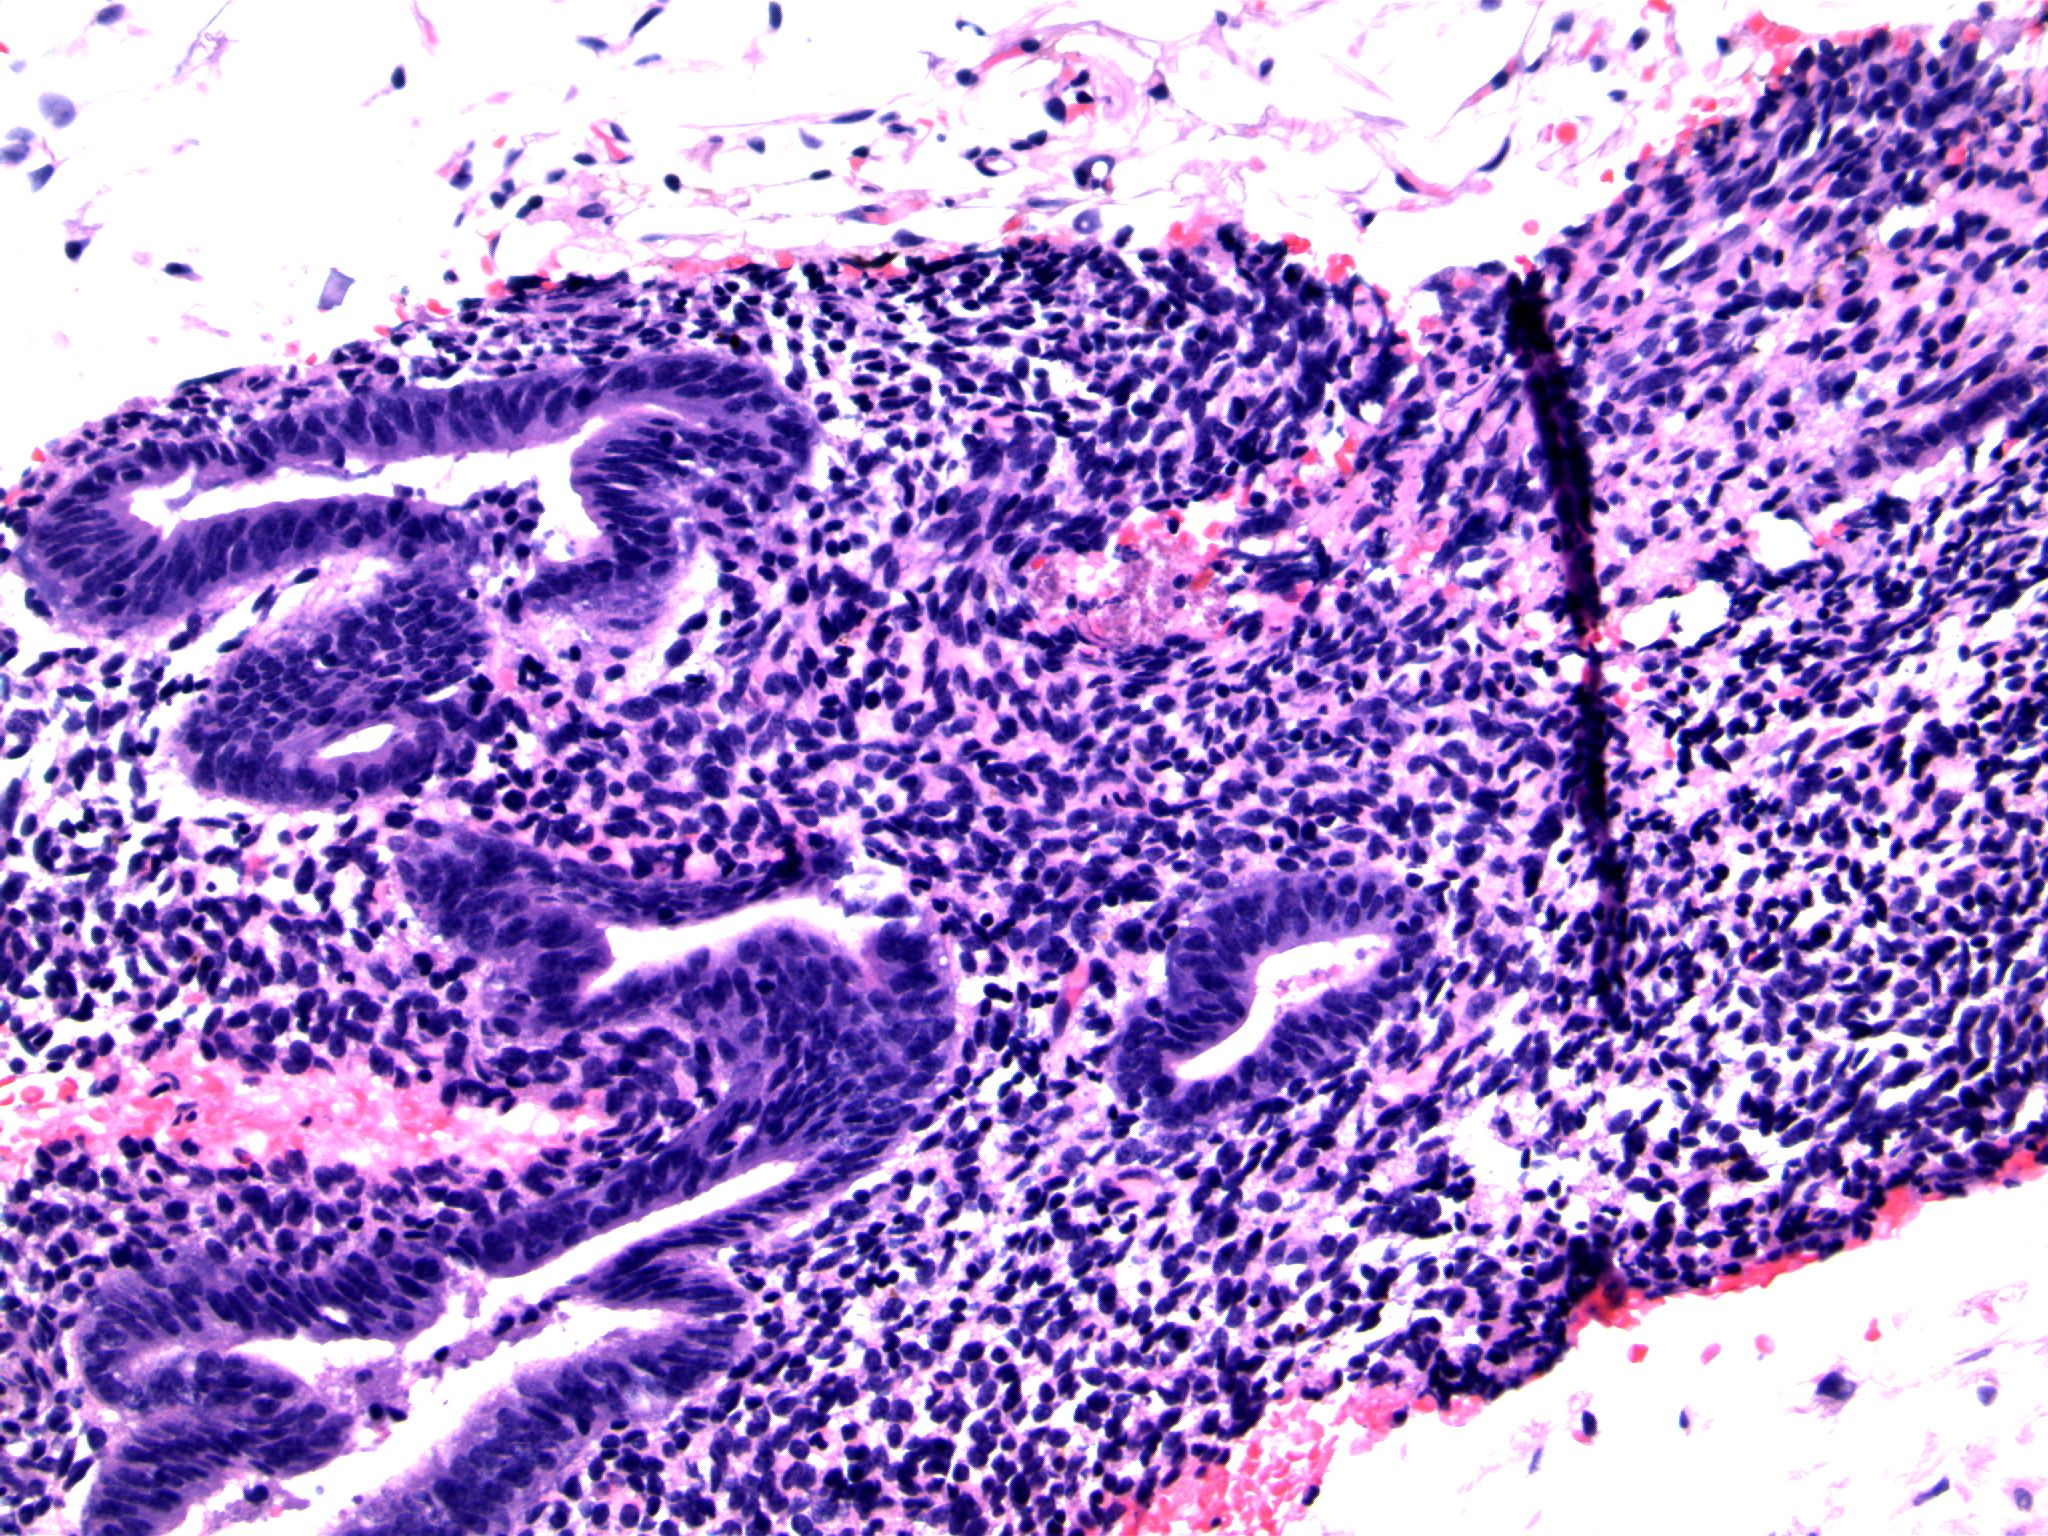 Image 7.  The bland columnar cells are associated with slightly spindled stromal cells and fibrin thombi